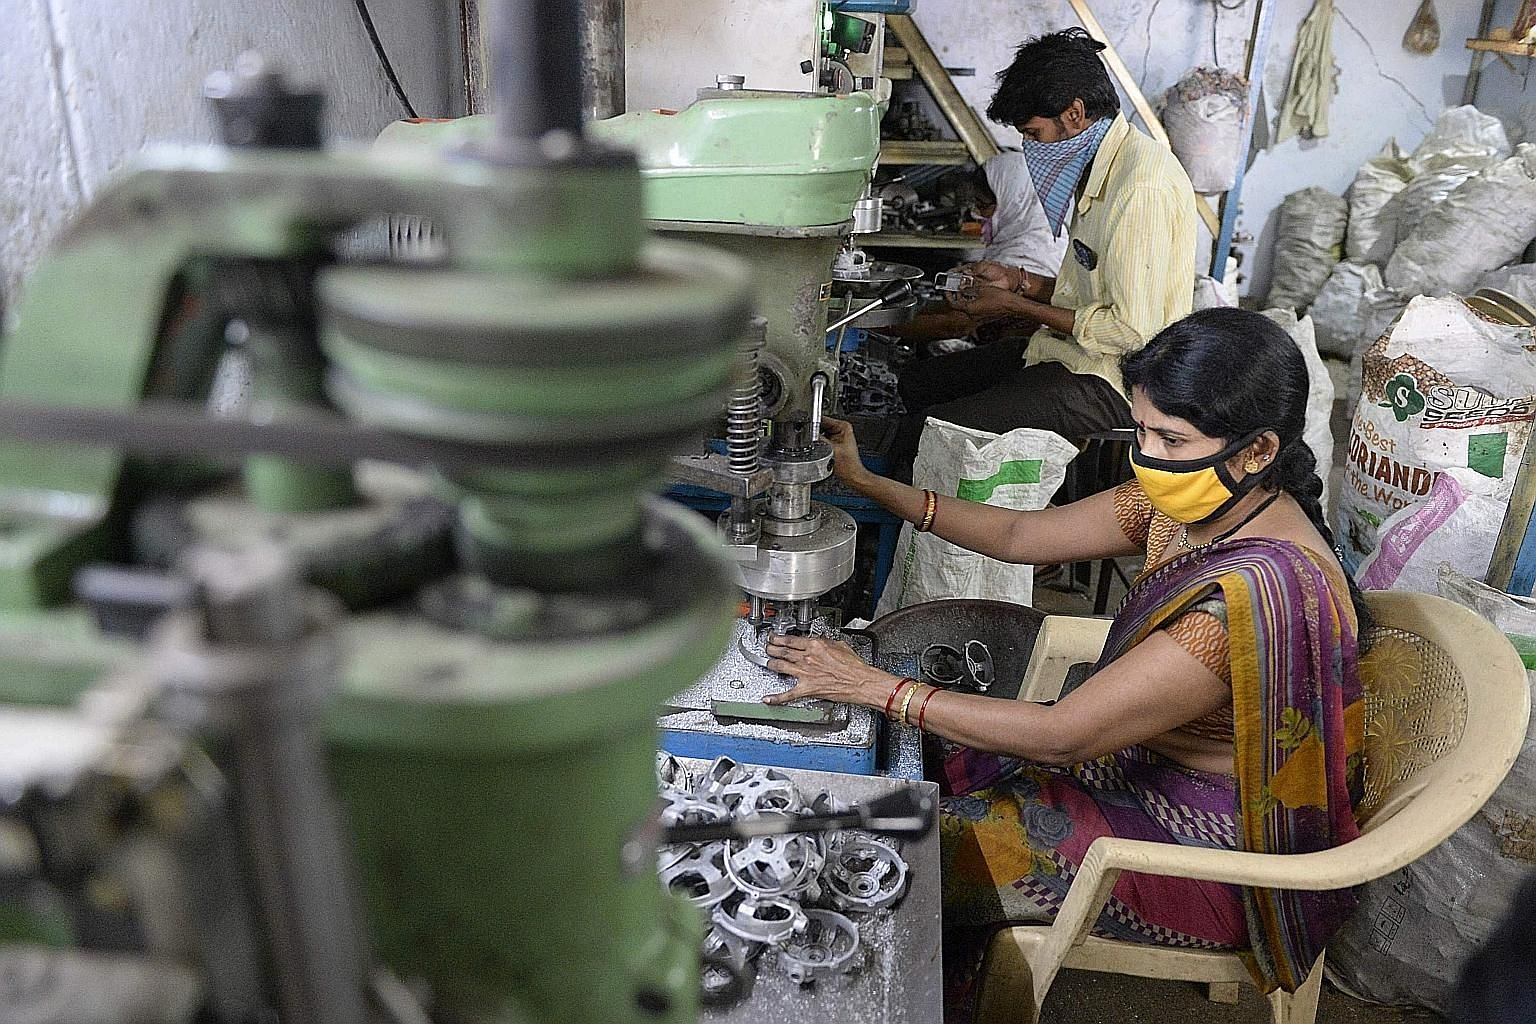 India has identified 12 sectors it can achieve self-reliance in. They include shoes, auto components, textiles, industrial machinery (above) and furniture, sectors which India wants to be global suppliers. But multiple labour laws, weak infrastructur